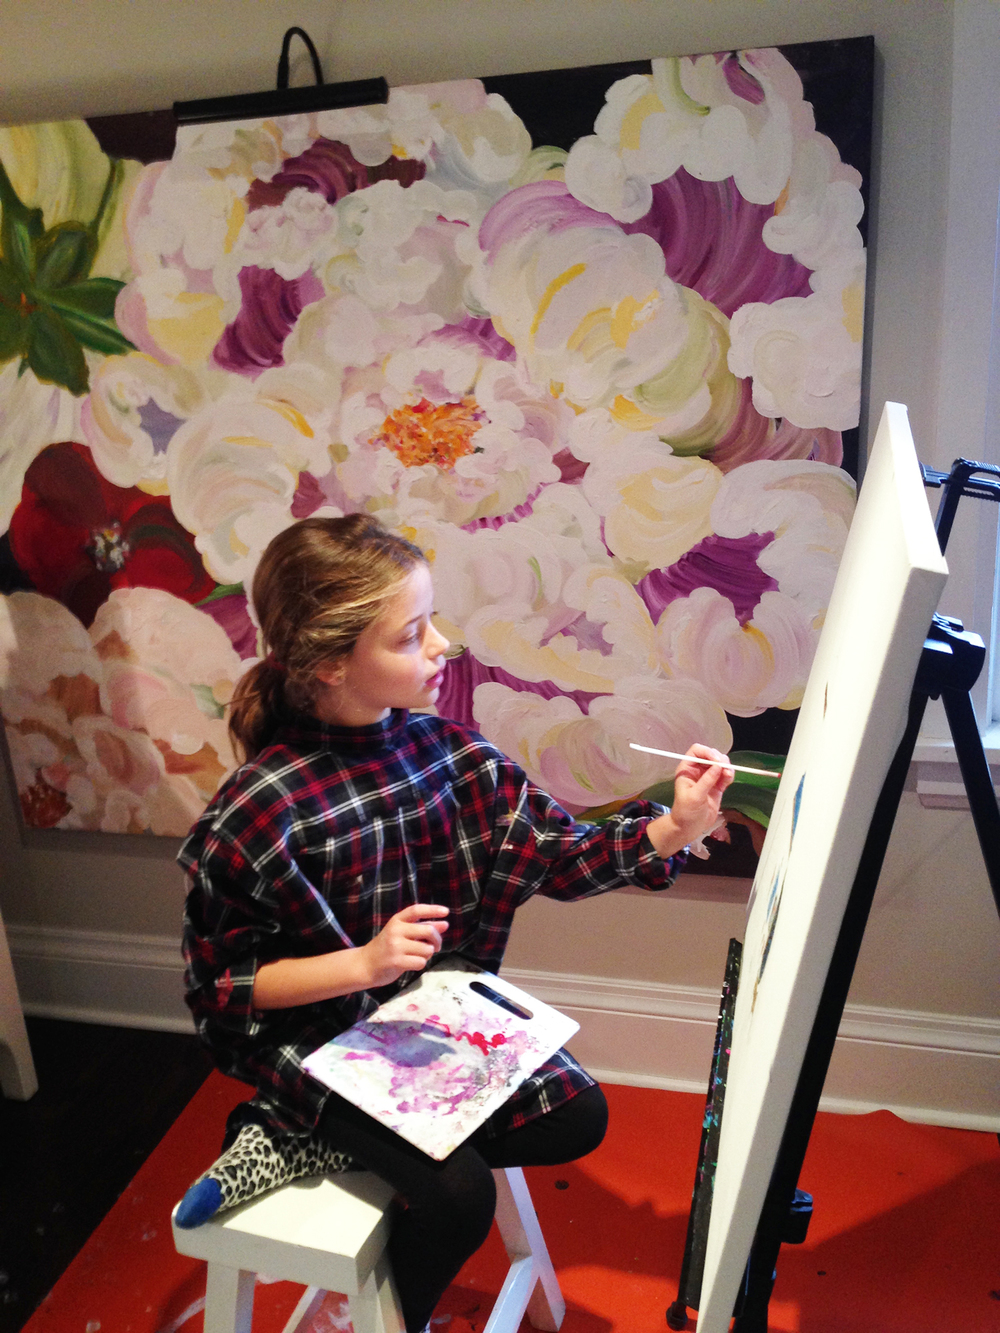 Mini artist at work!